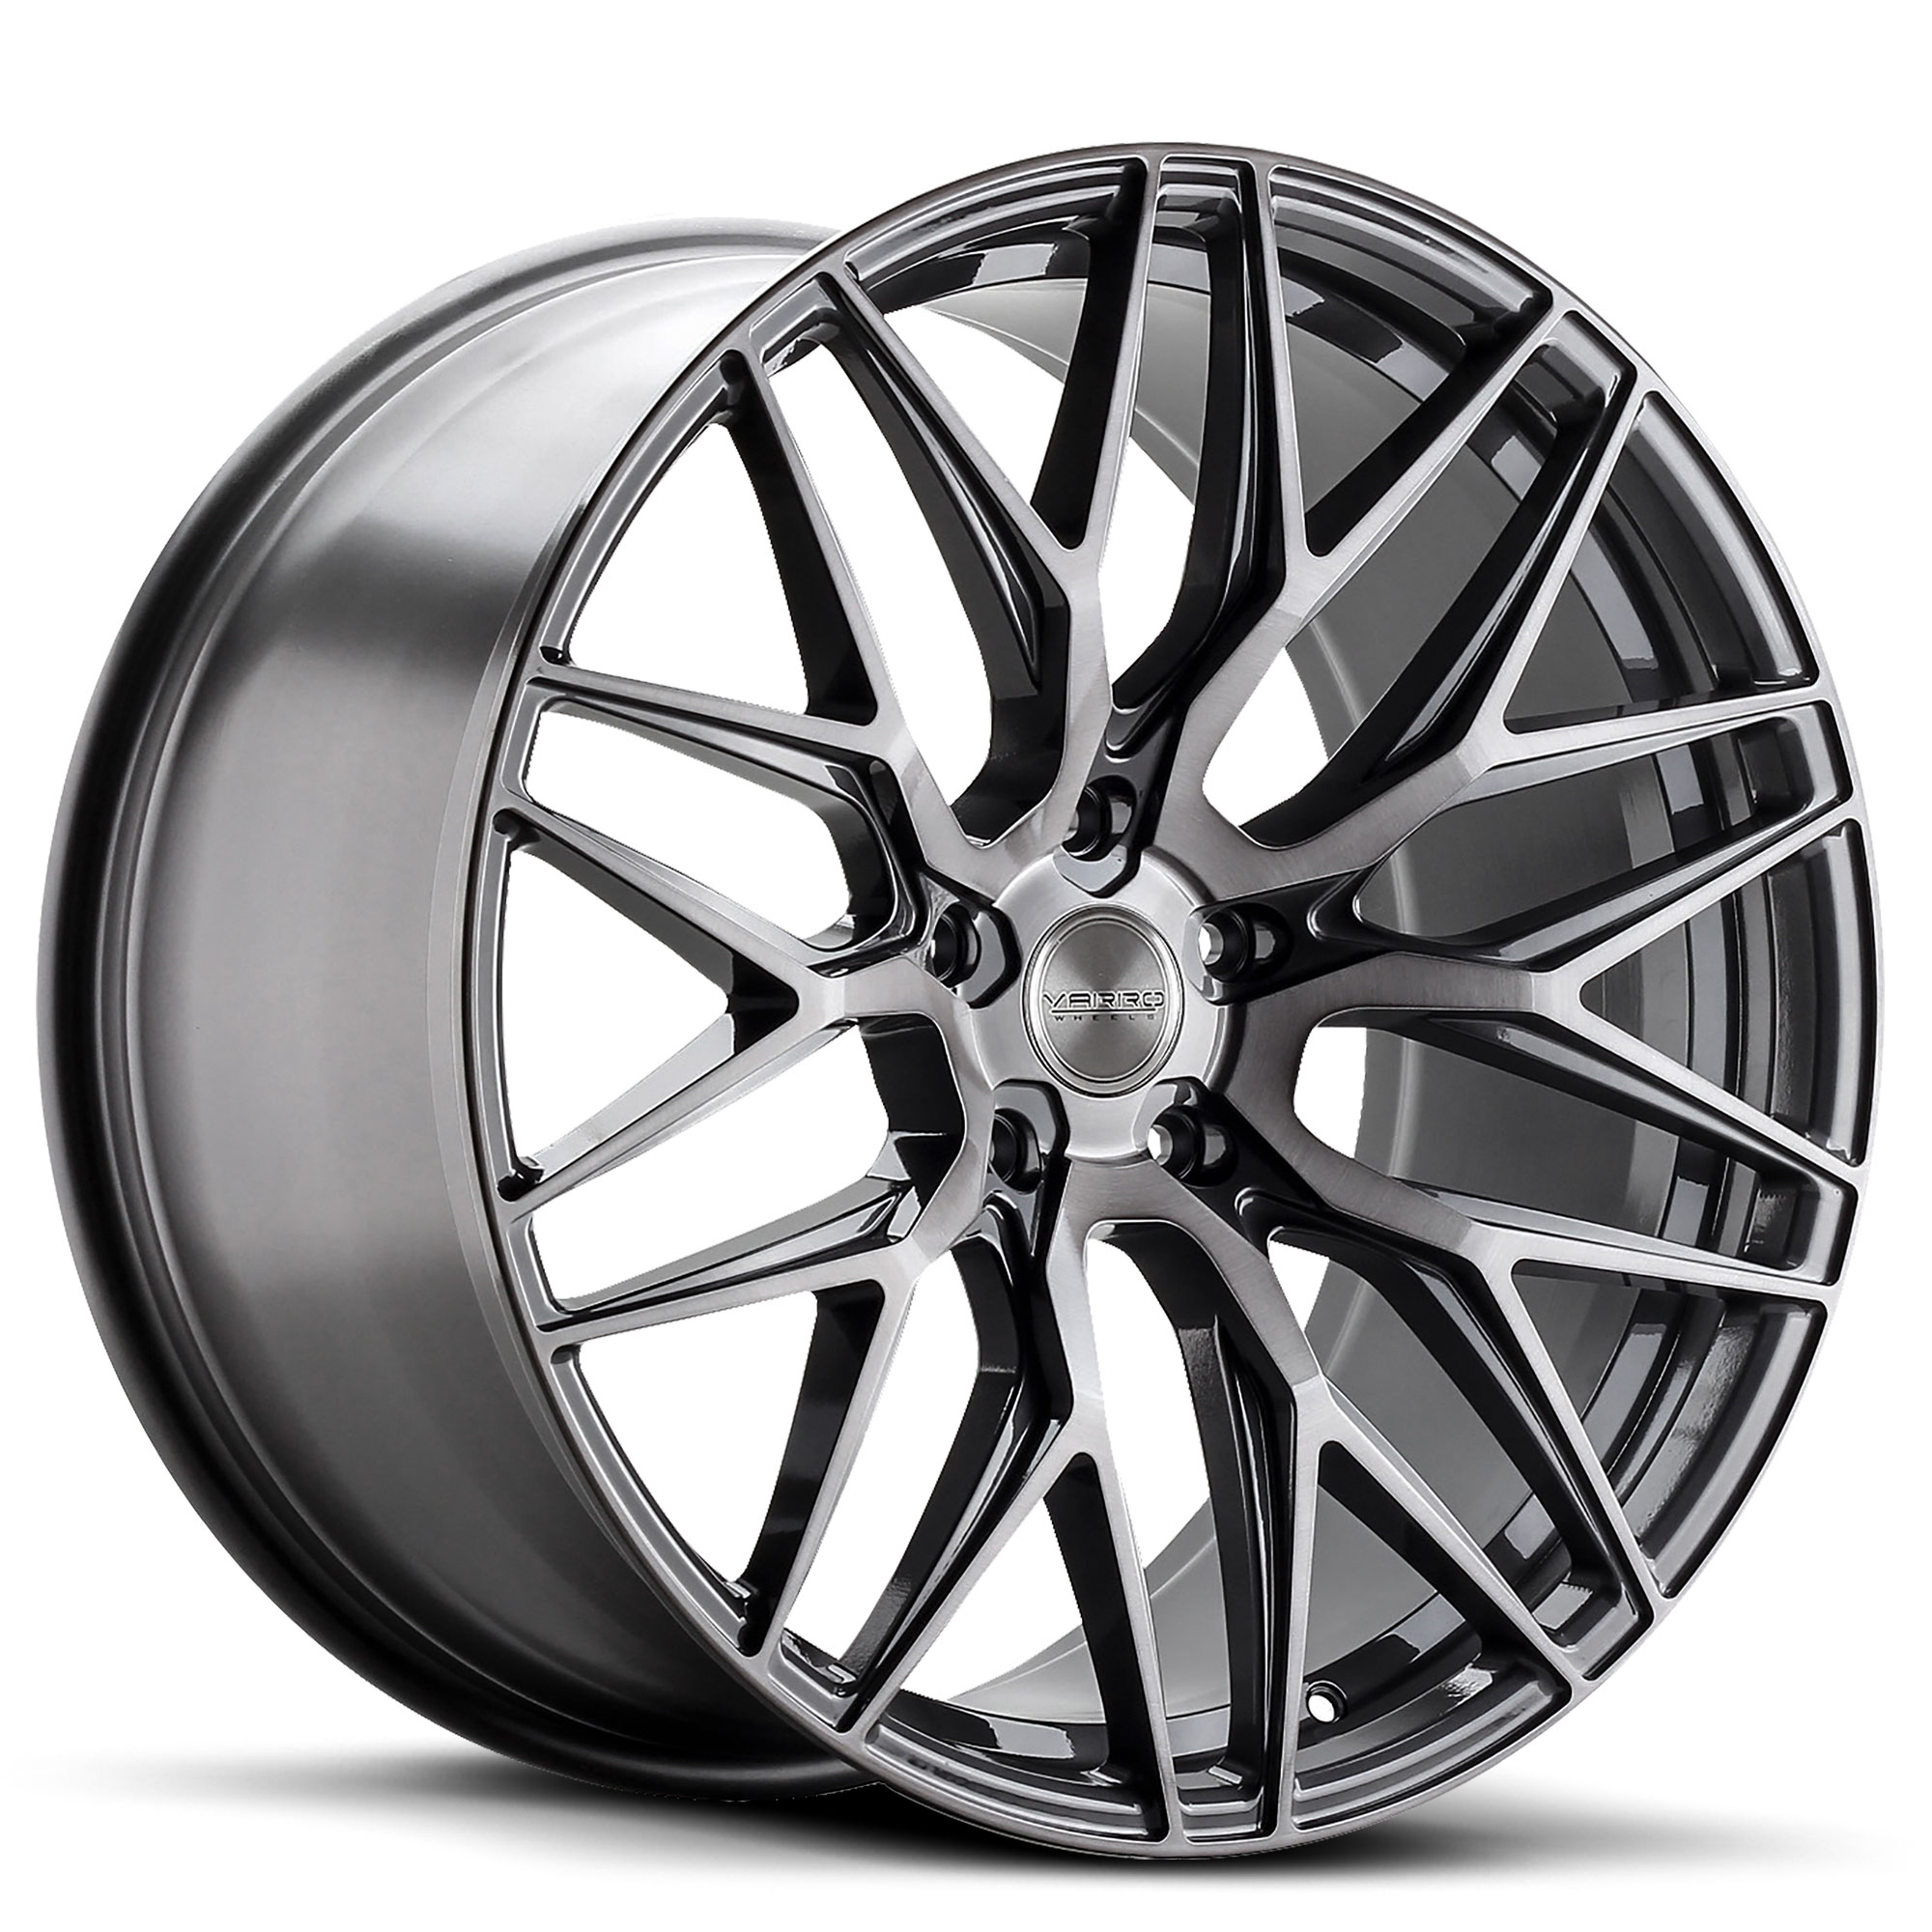 Varro Wheels VD06X Rims Spin Forged